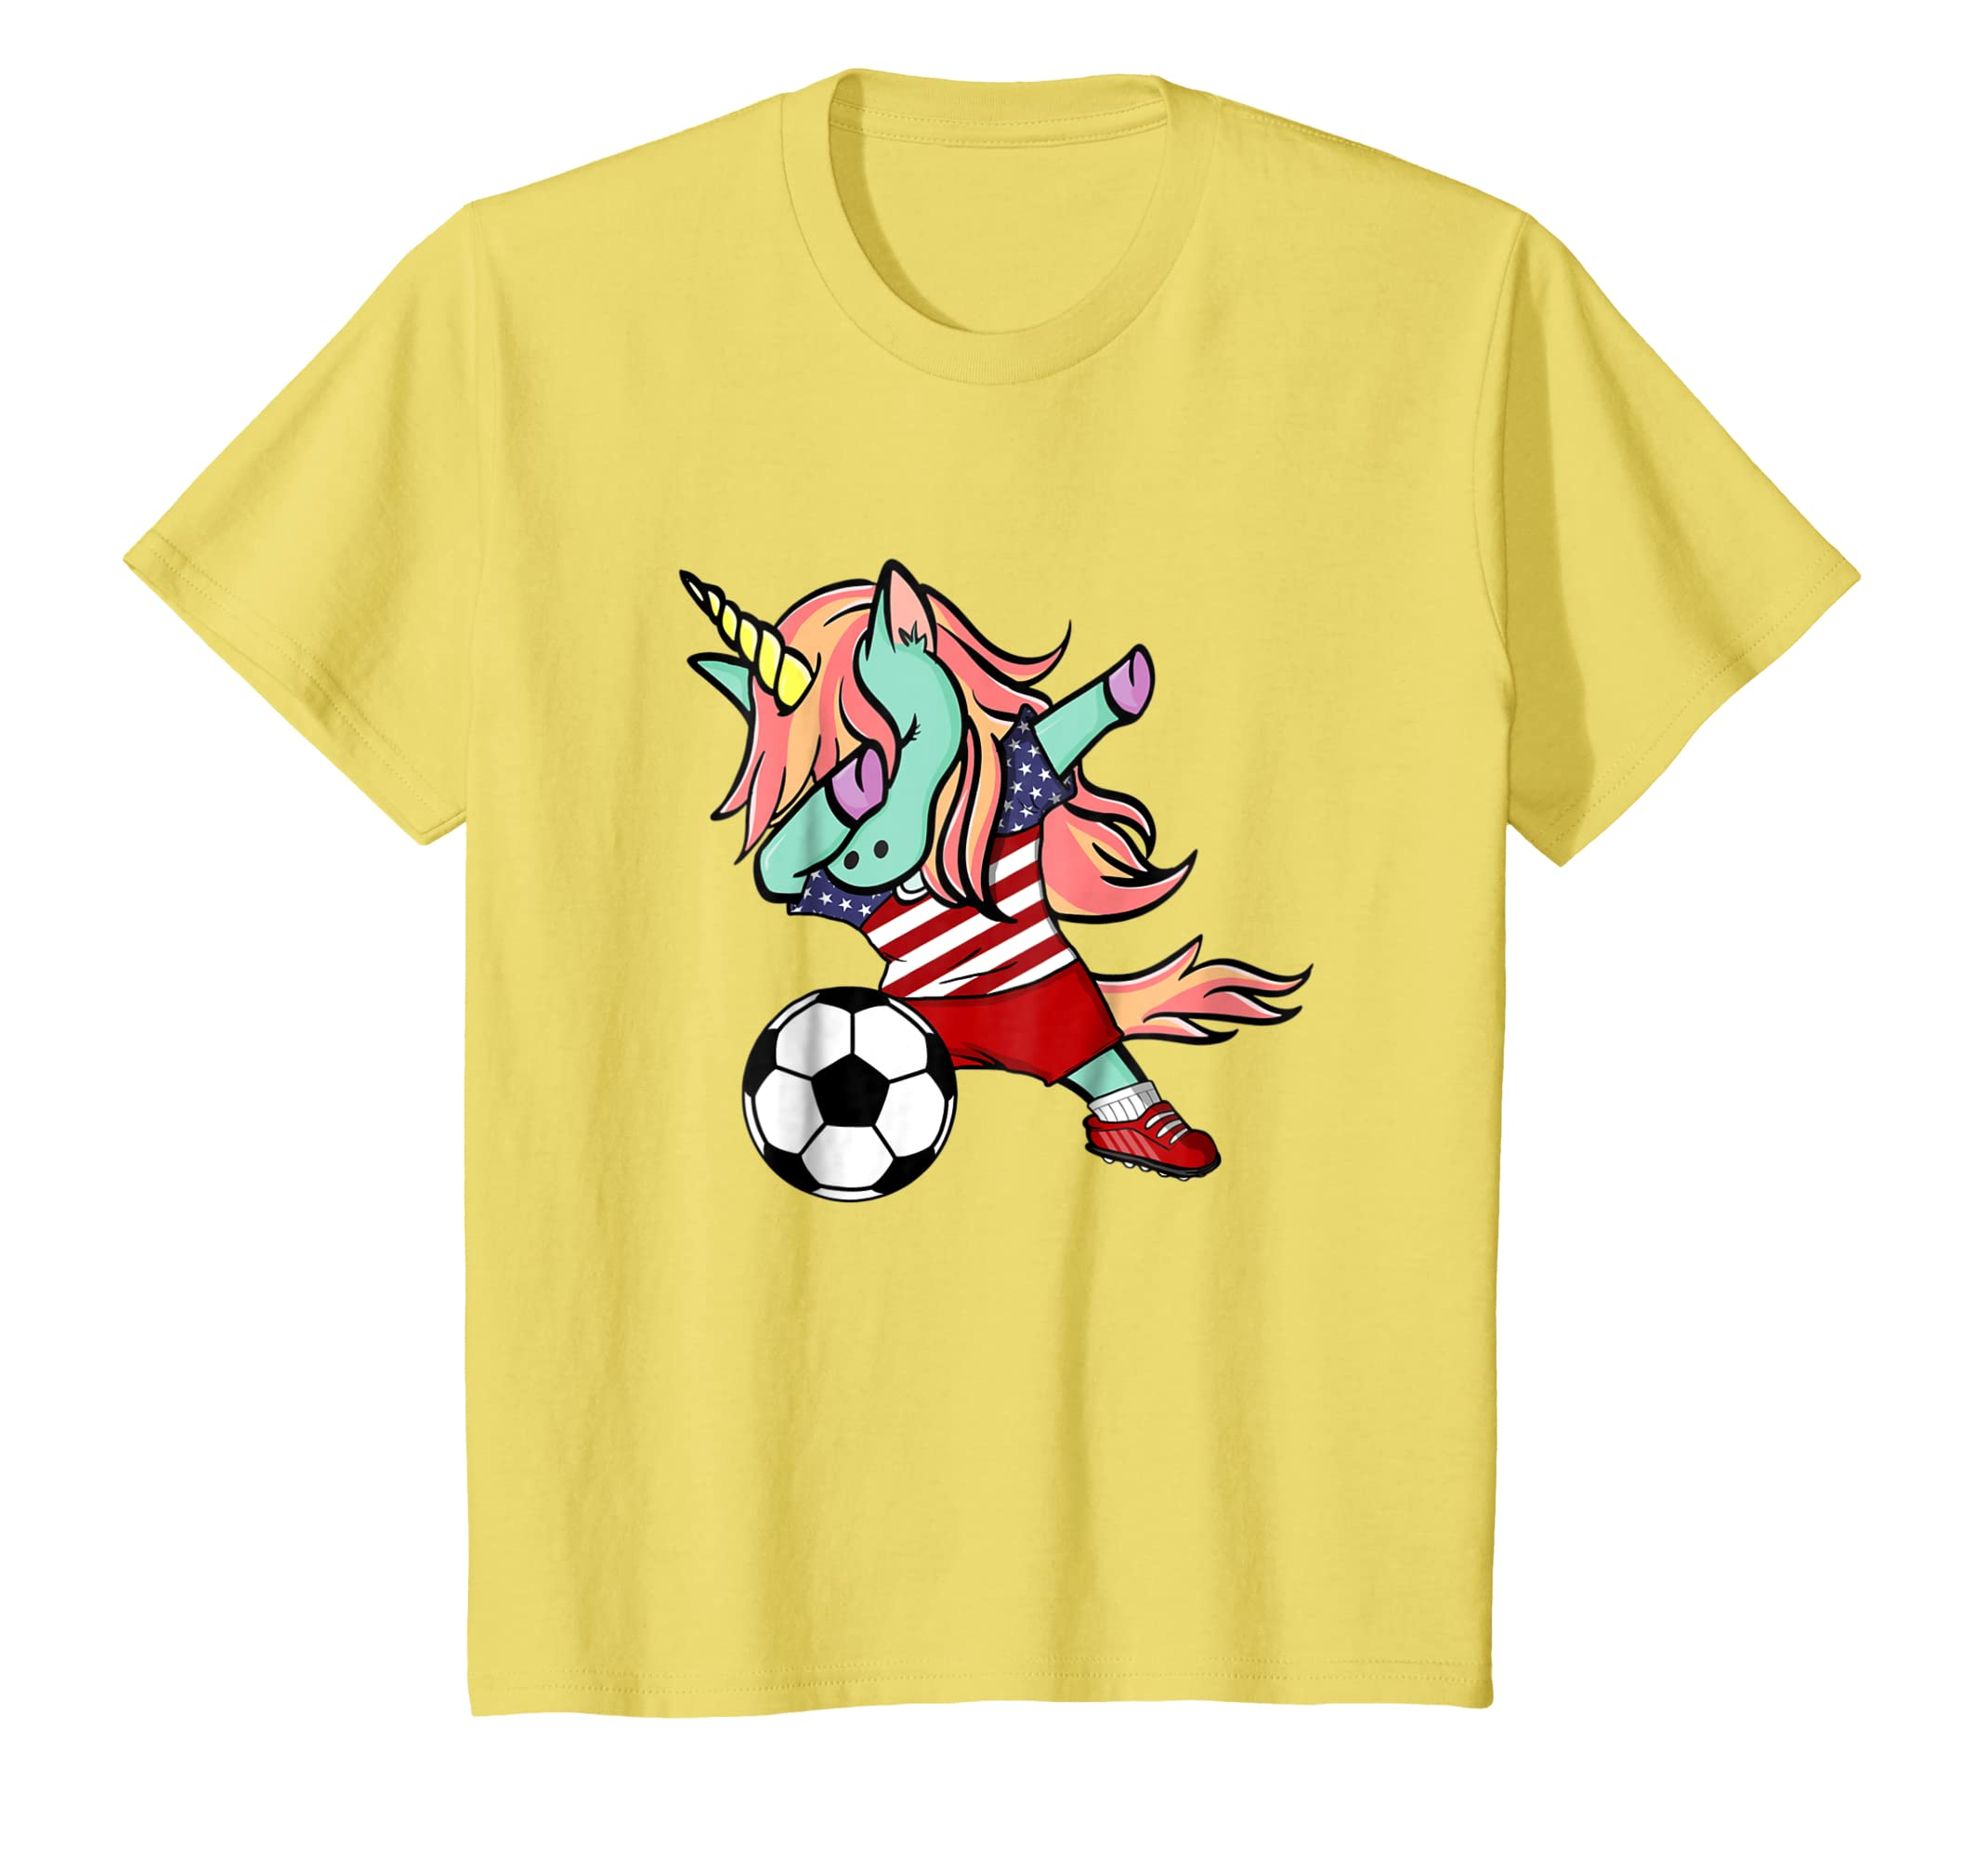 d28329e75f0 Amazon.com  Dabbing Unicorn Soccer United States Jersey Shirt Football   Clothing